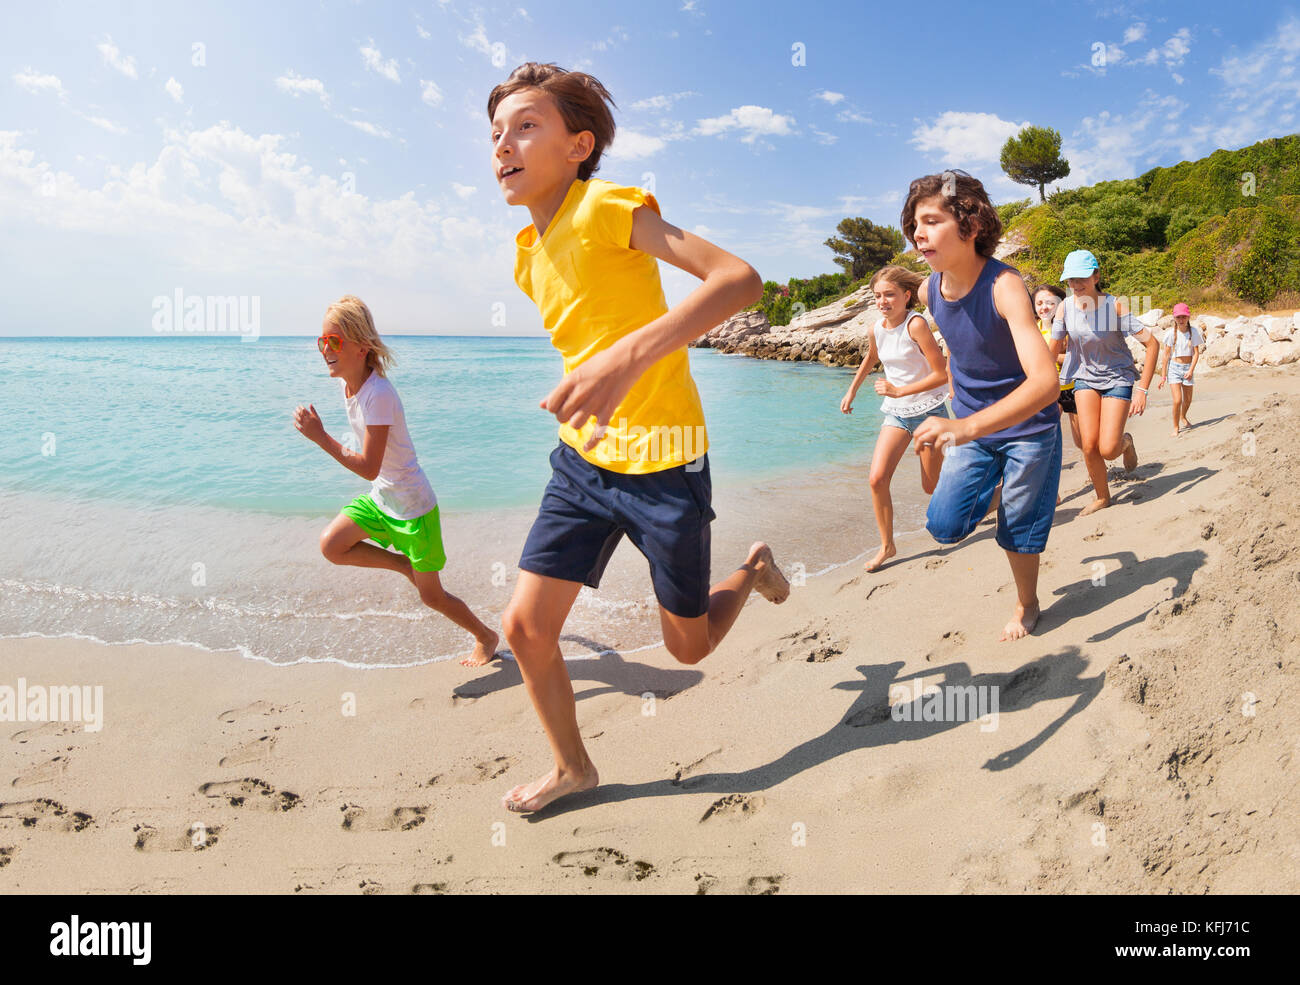 58438c5066 Running along the beach sea edge large group of kids boys and girls on  summer hot day